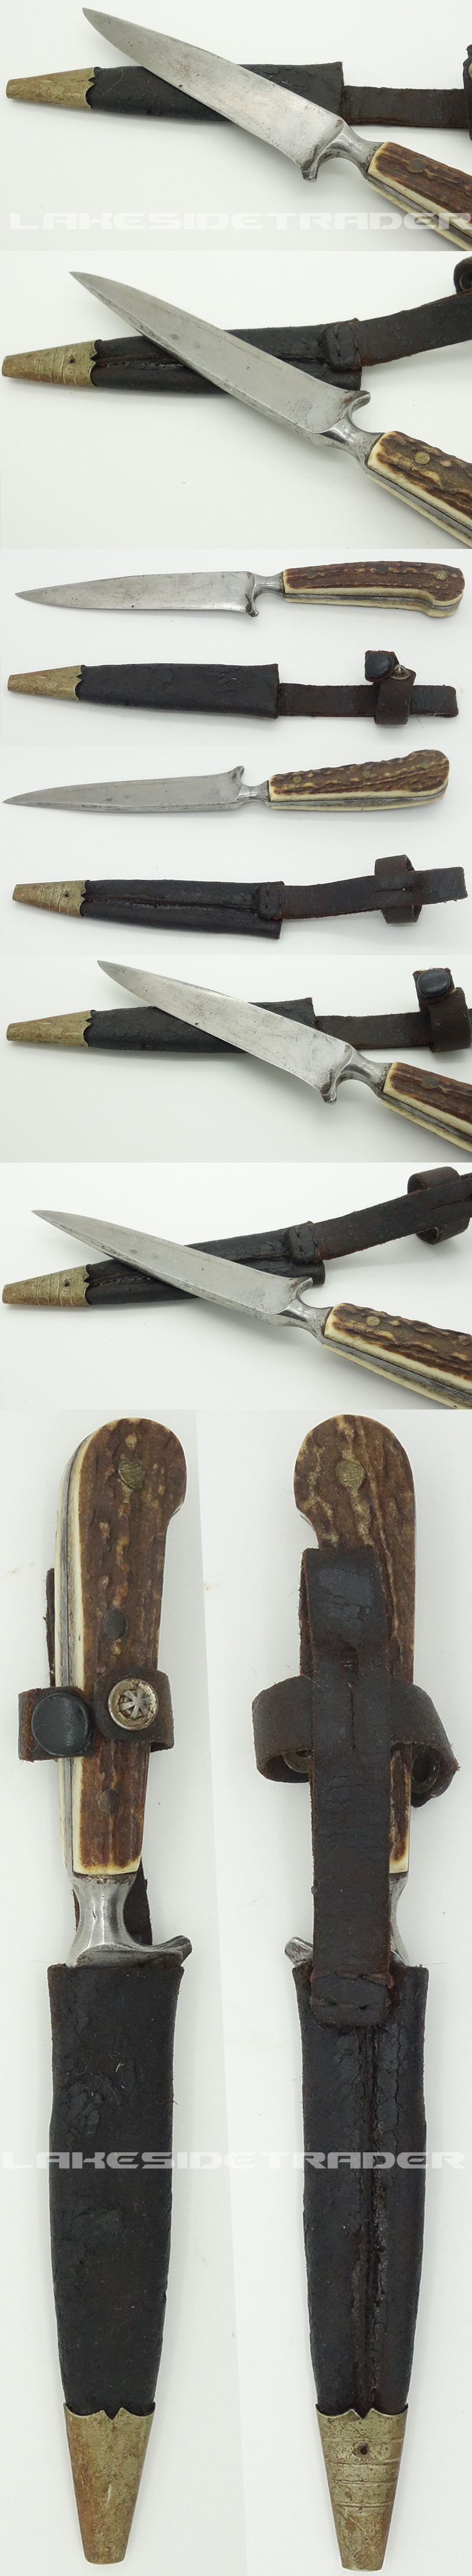 Stag Grip Private Purchase Knife